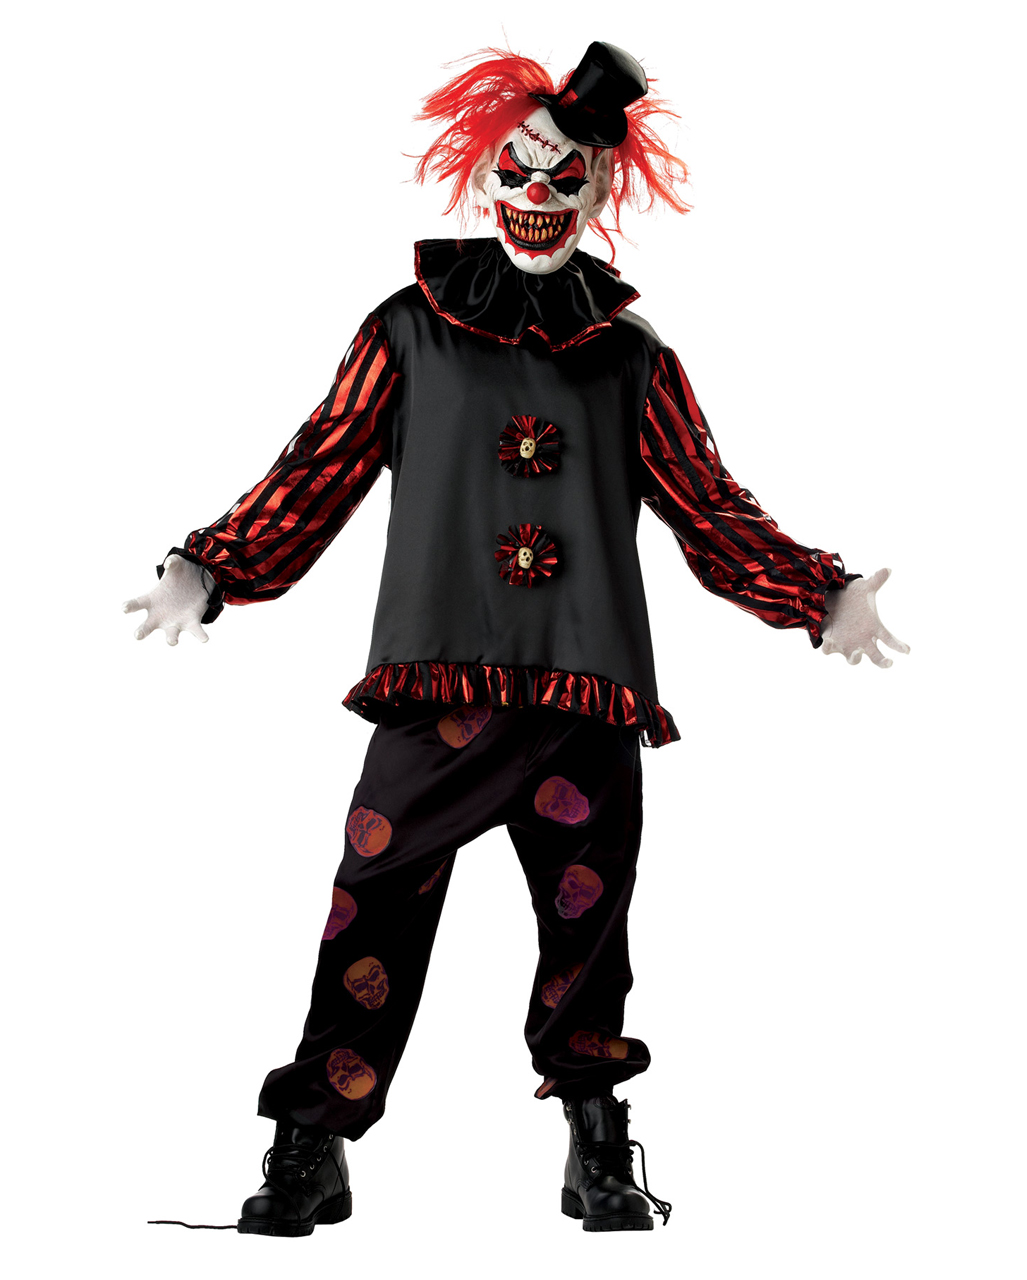 horror clown kost m mit maske f r fasching karneval universe. Black Bedroom Furniture Sets. Home Design Ideas